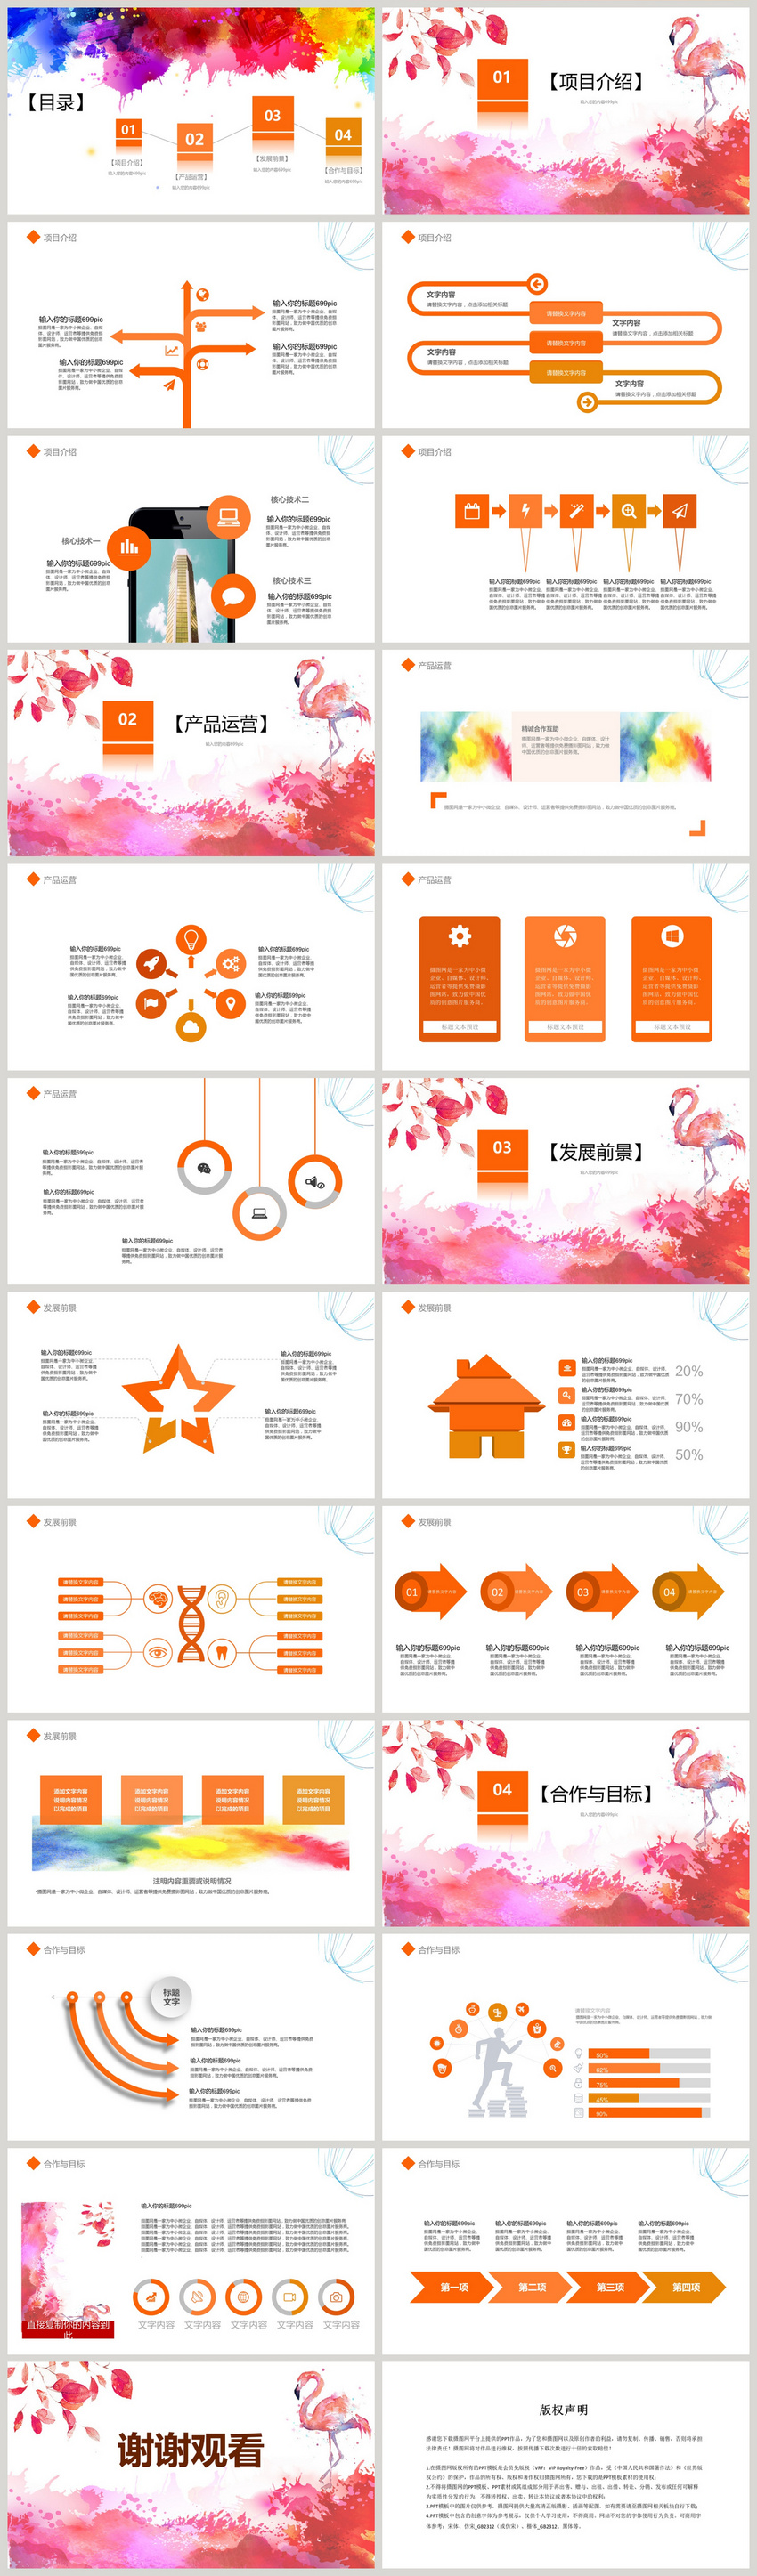 simple fashion business plan ppt template